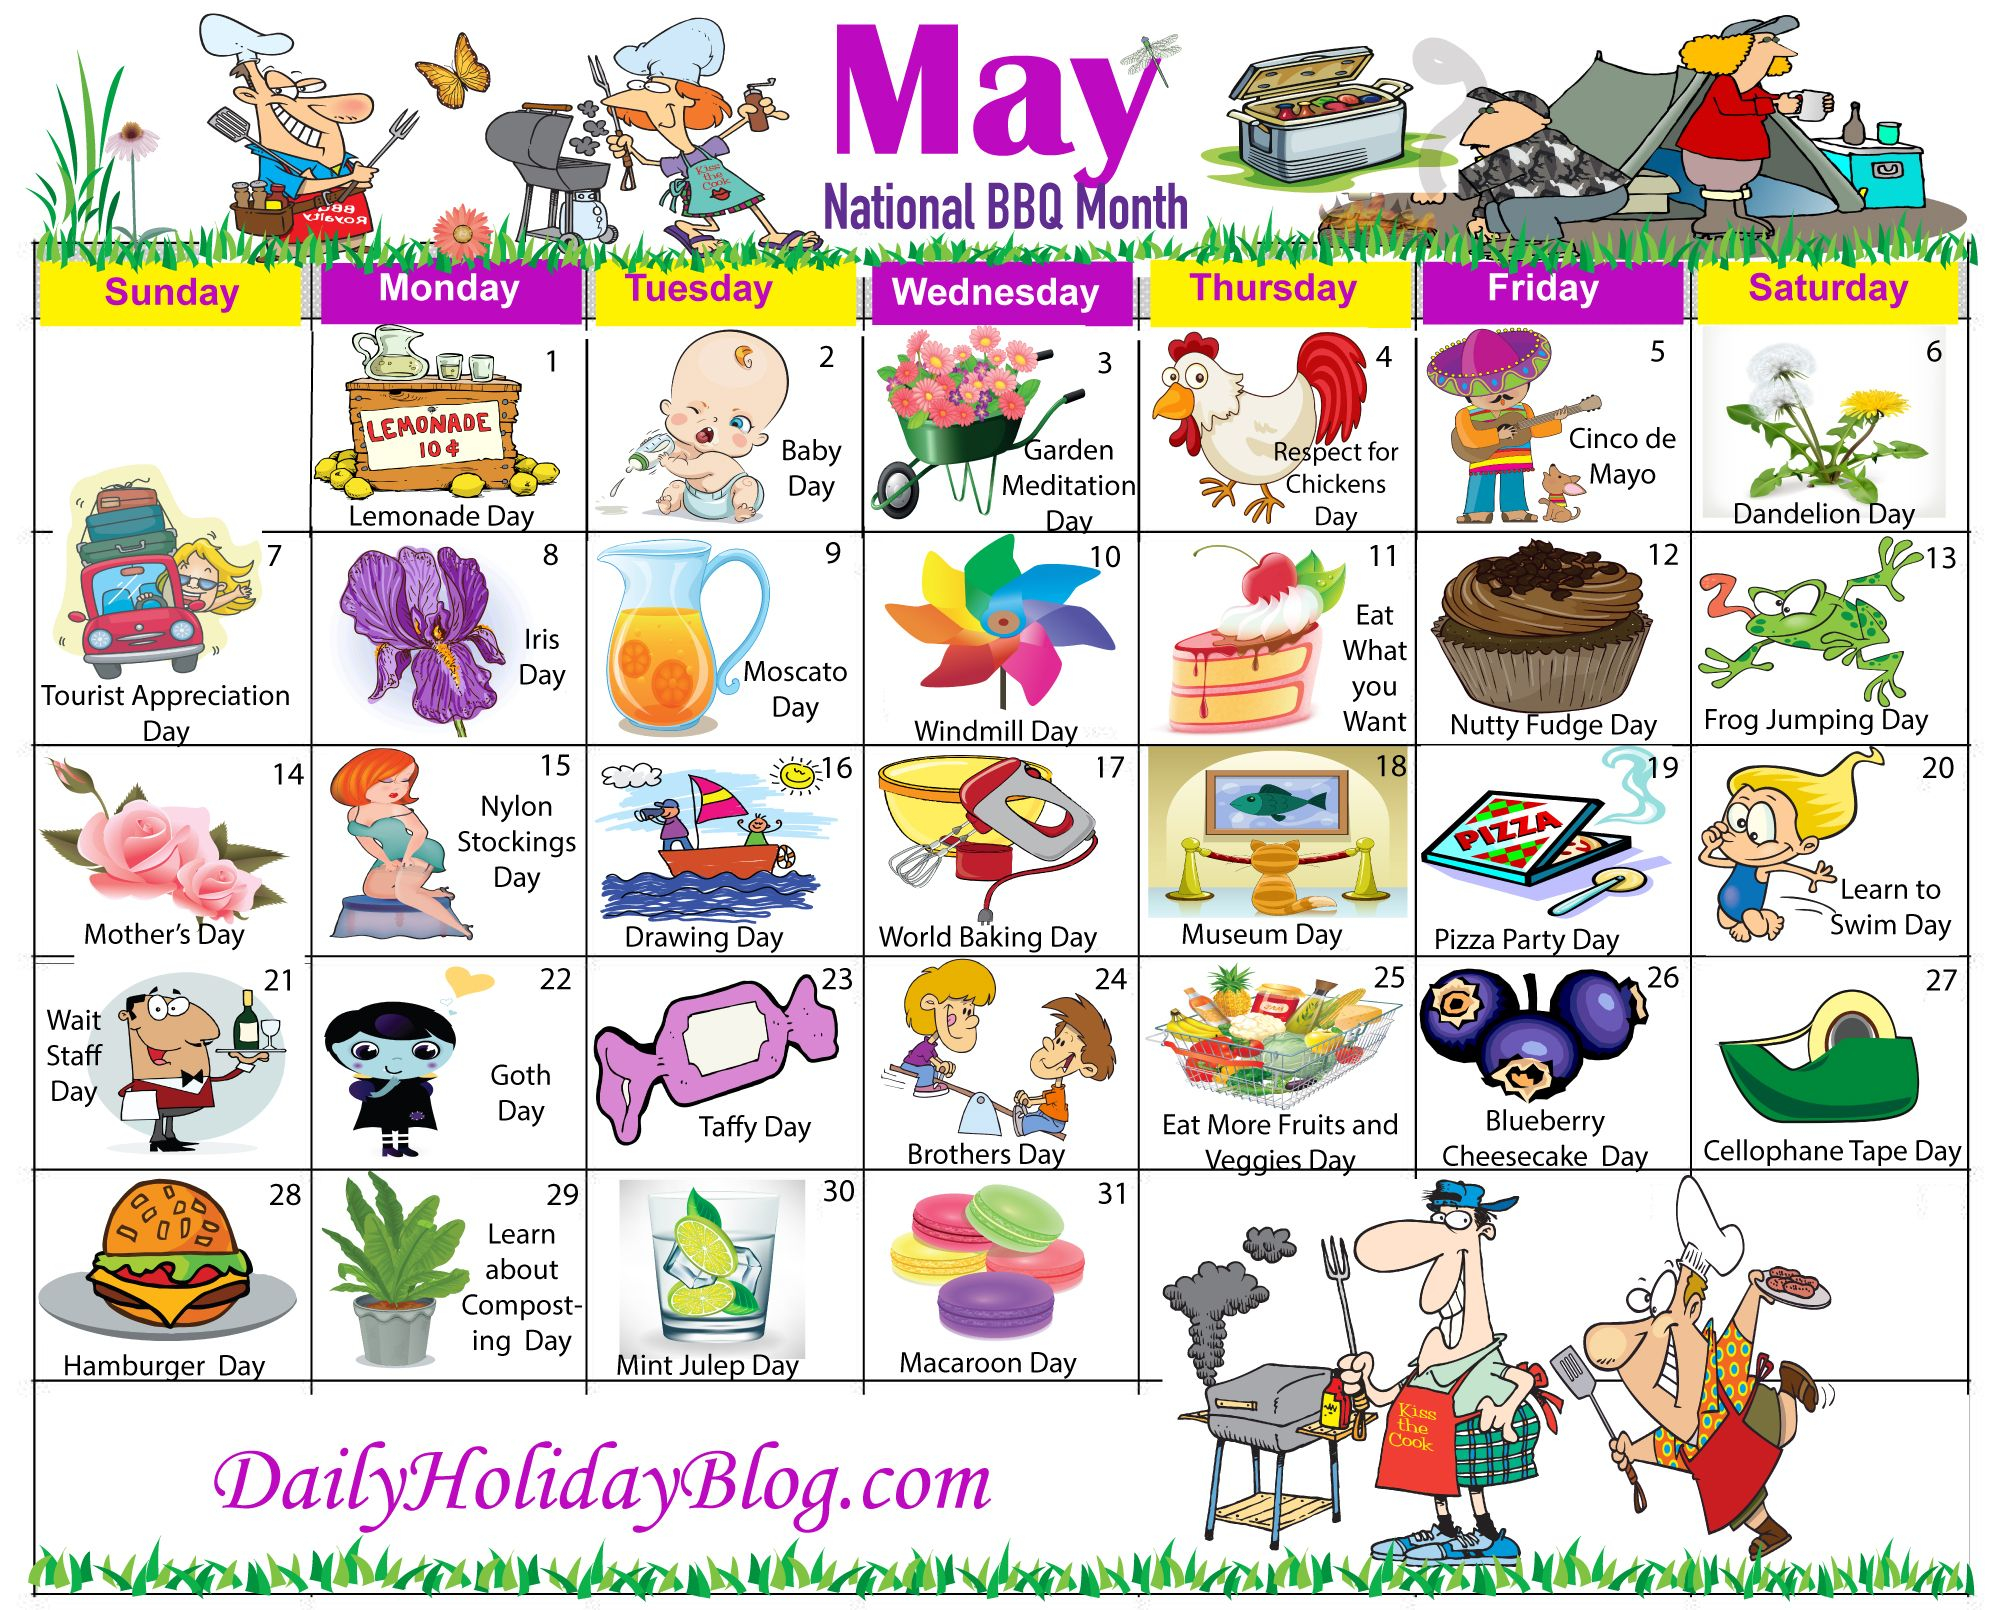 For Subscribers! (With Images) | National Holiday Calendar With Every Day Is A Holiday Calendar